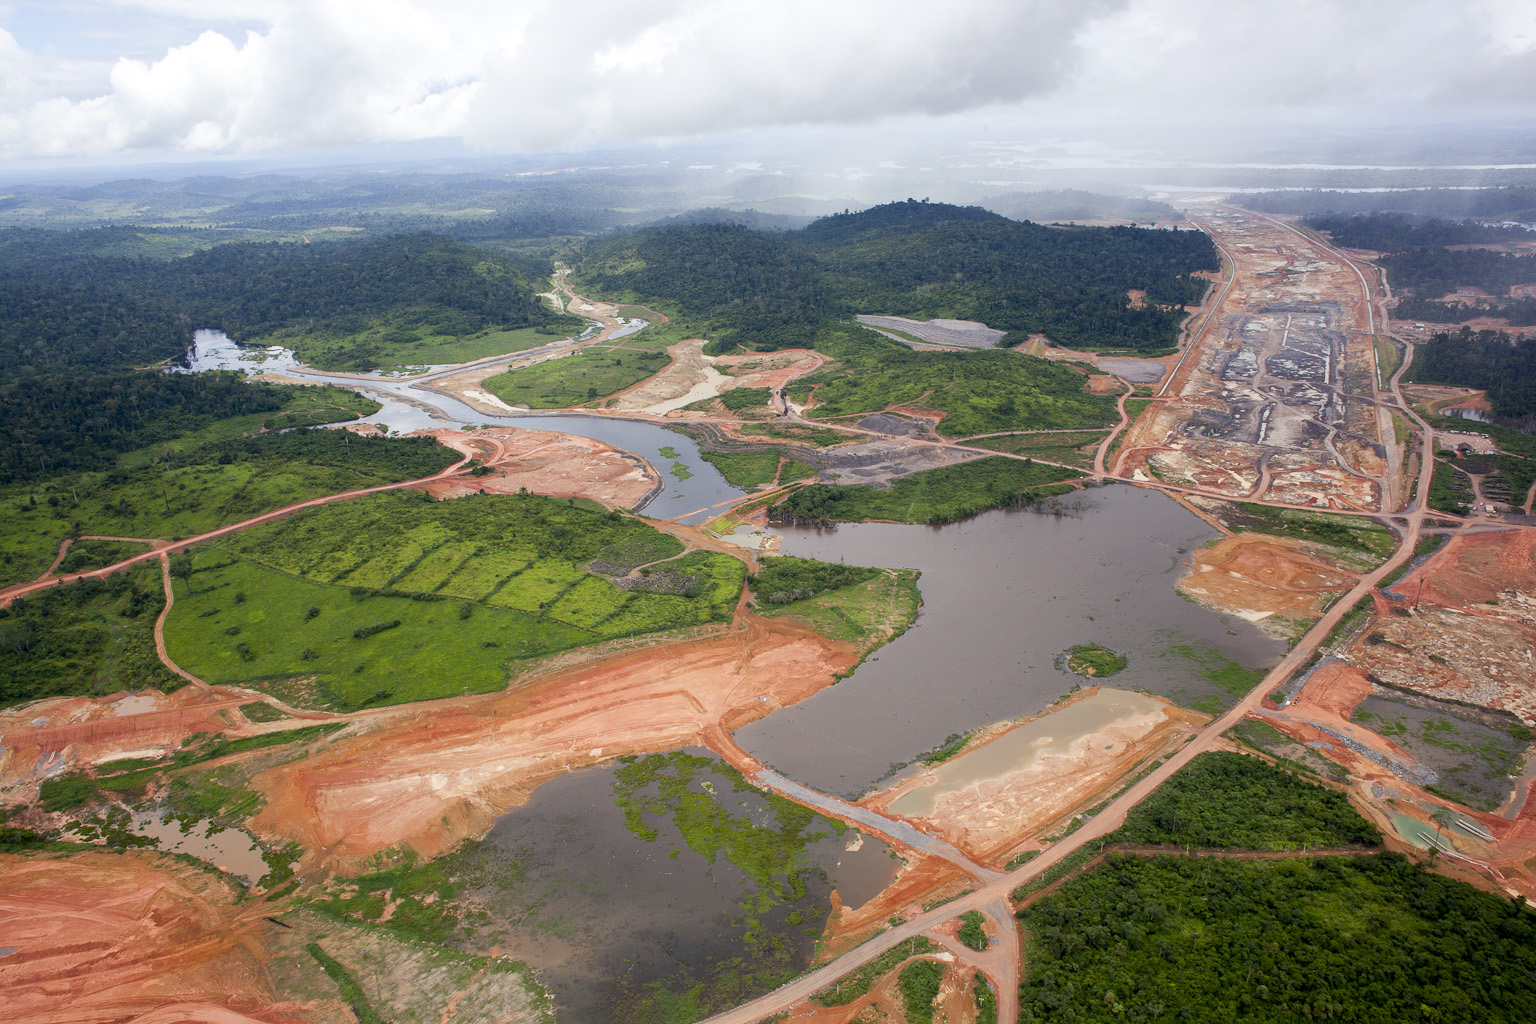 Construction of the Belo Monte Dam